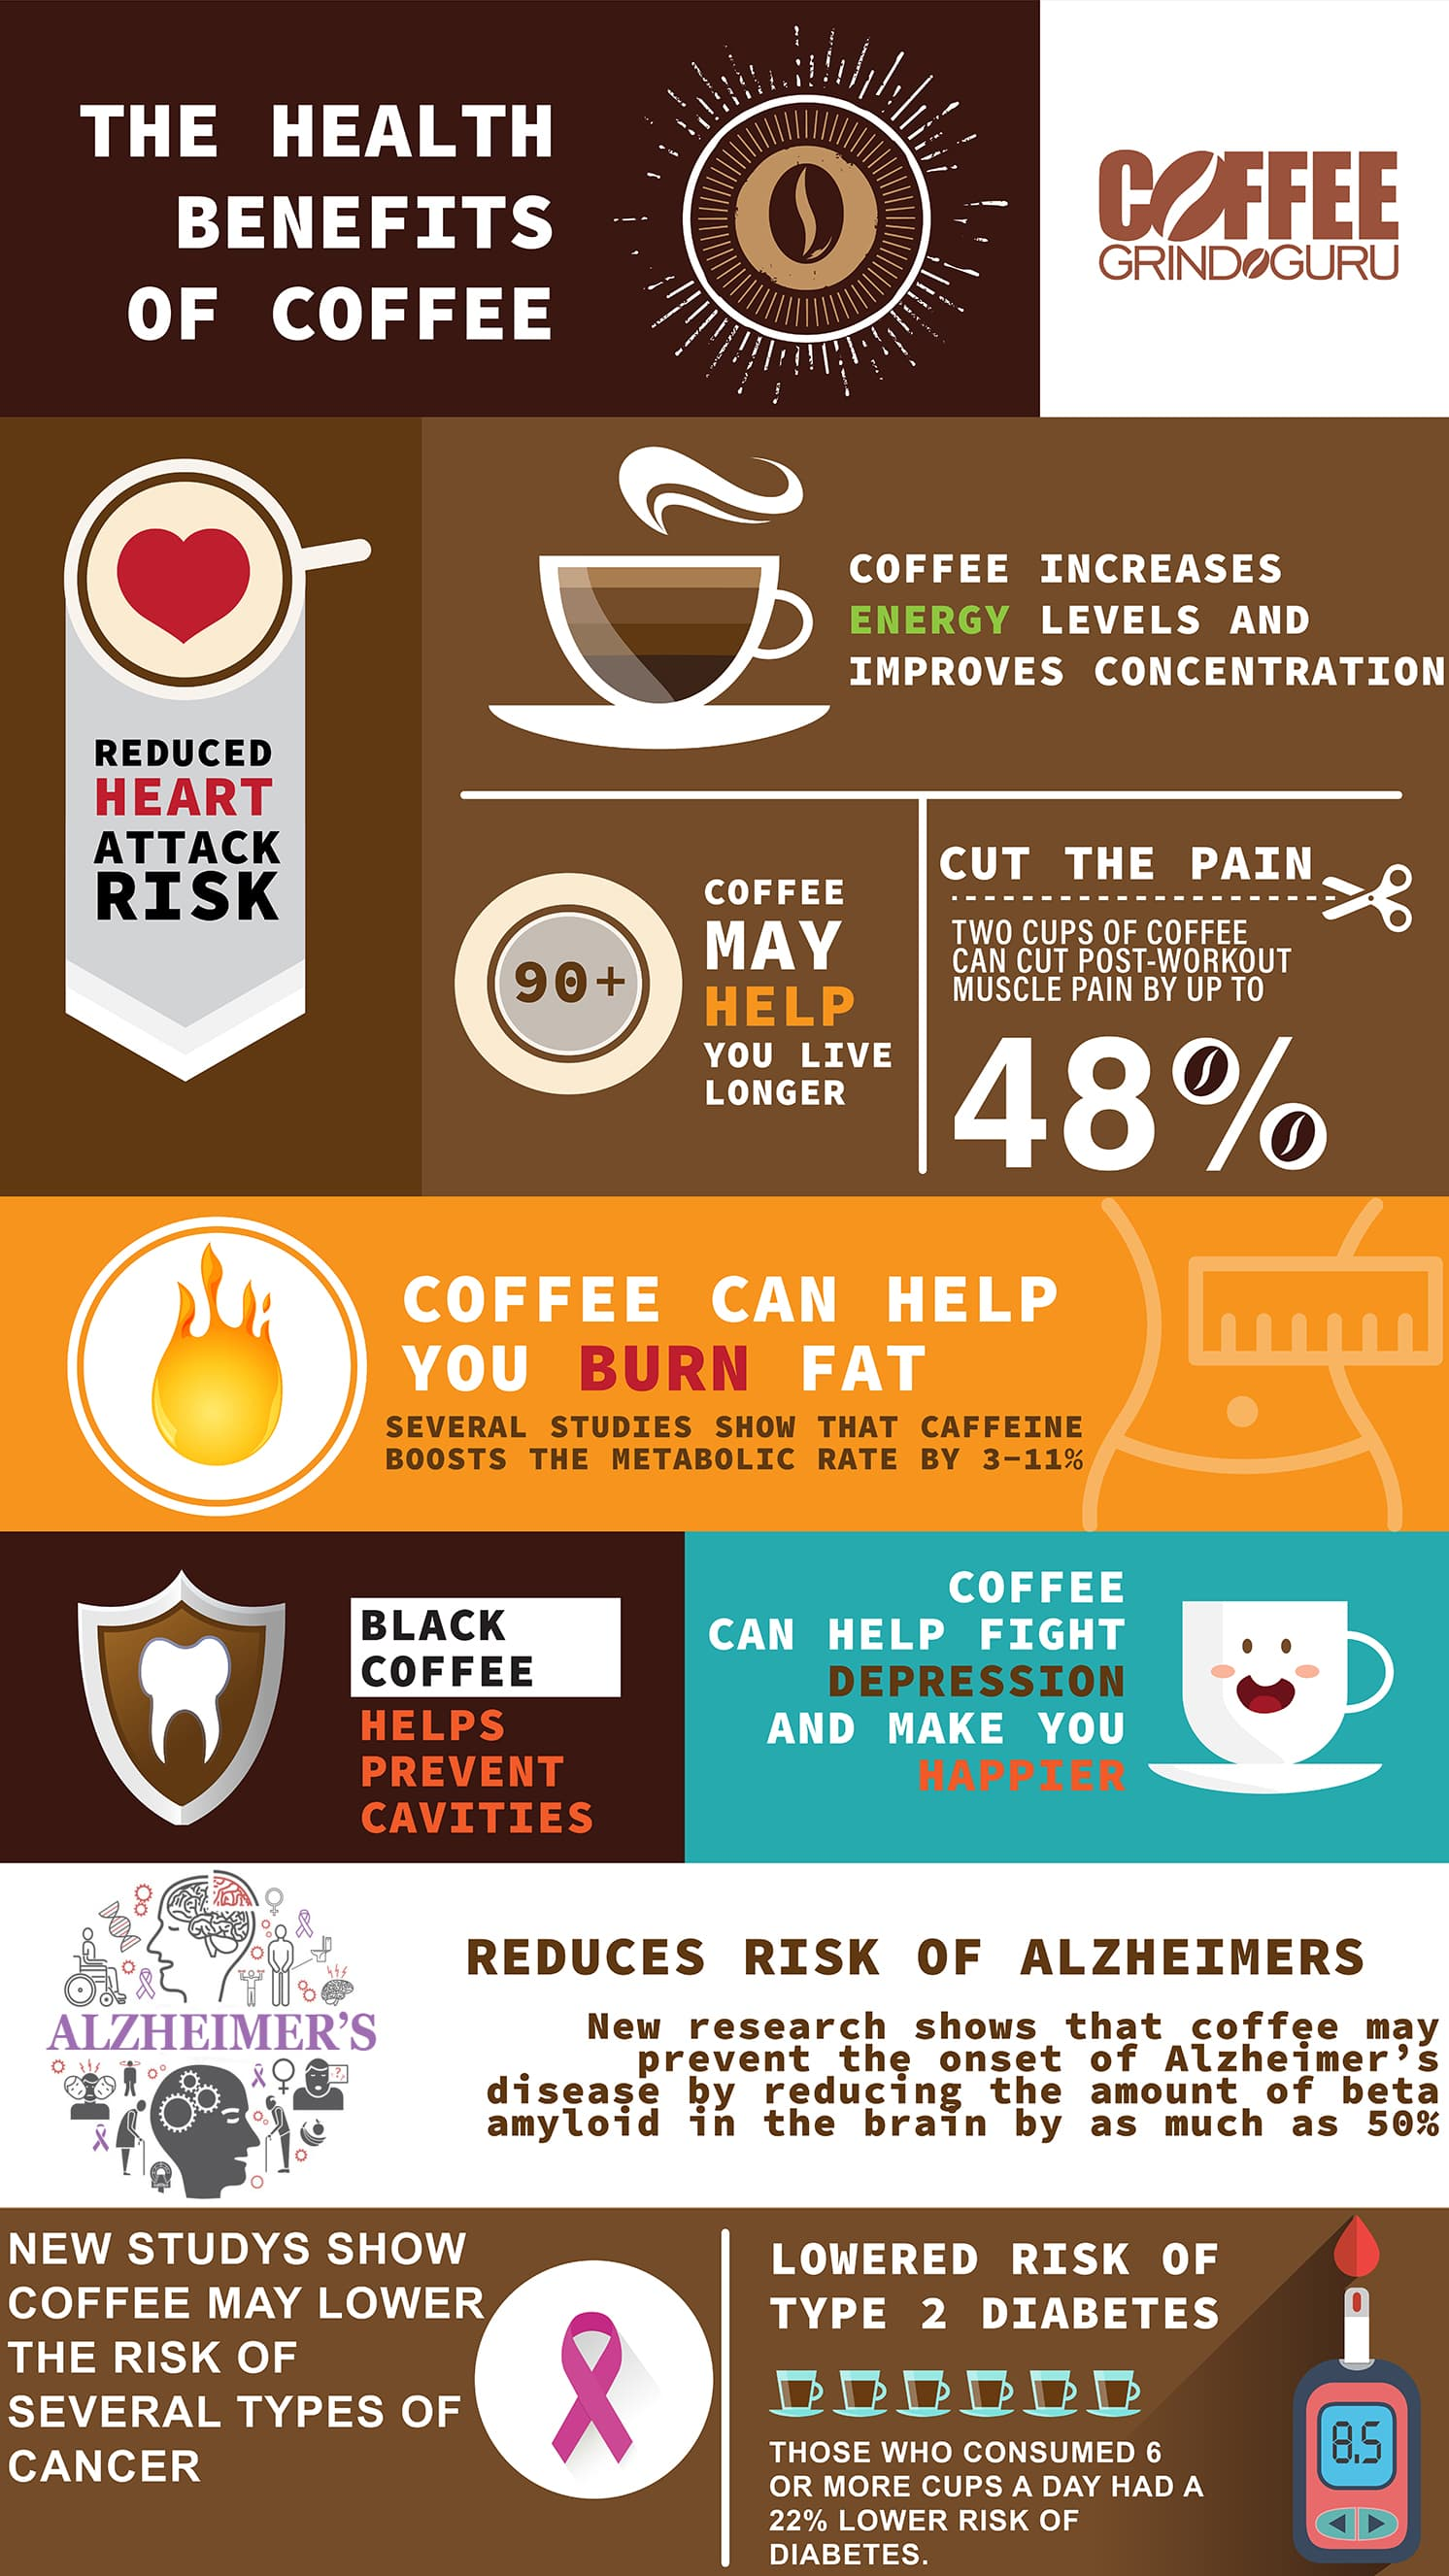 the other health benefits of coffee